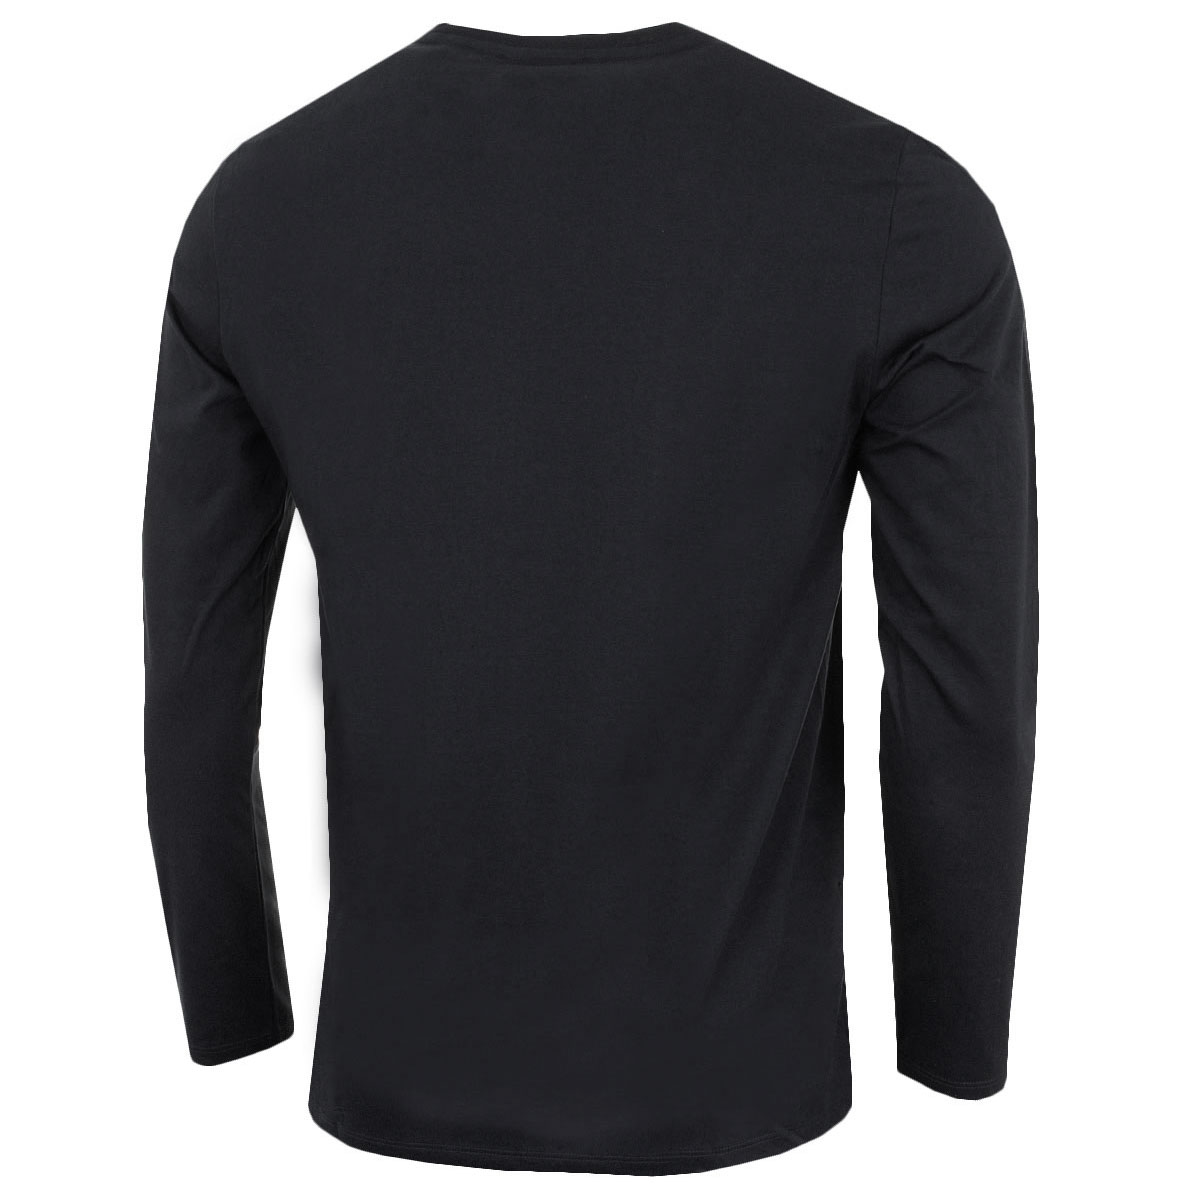 Lacoste-Mens-2019-LS-Crew-Neck-Cotton-T-Shirt-TH6712-Long-Sleeve-Tee-27-OFF-RRP thumbnail 7